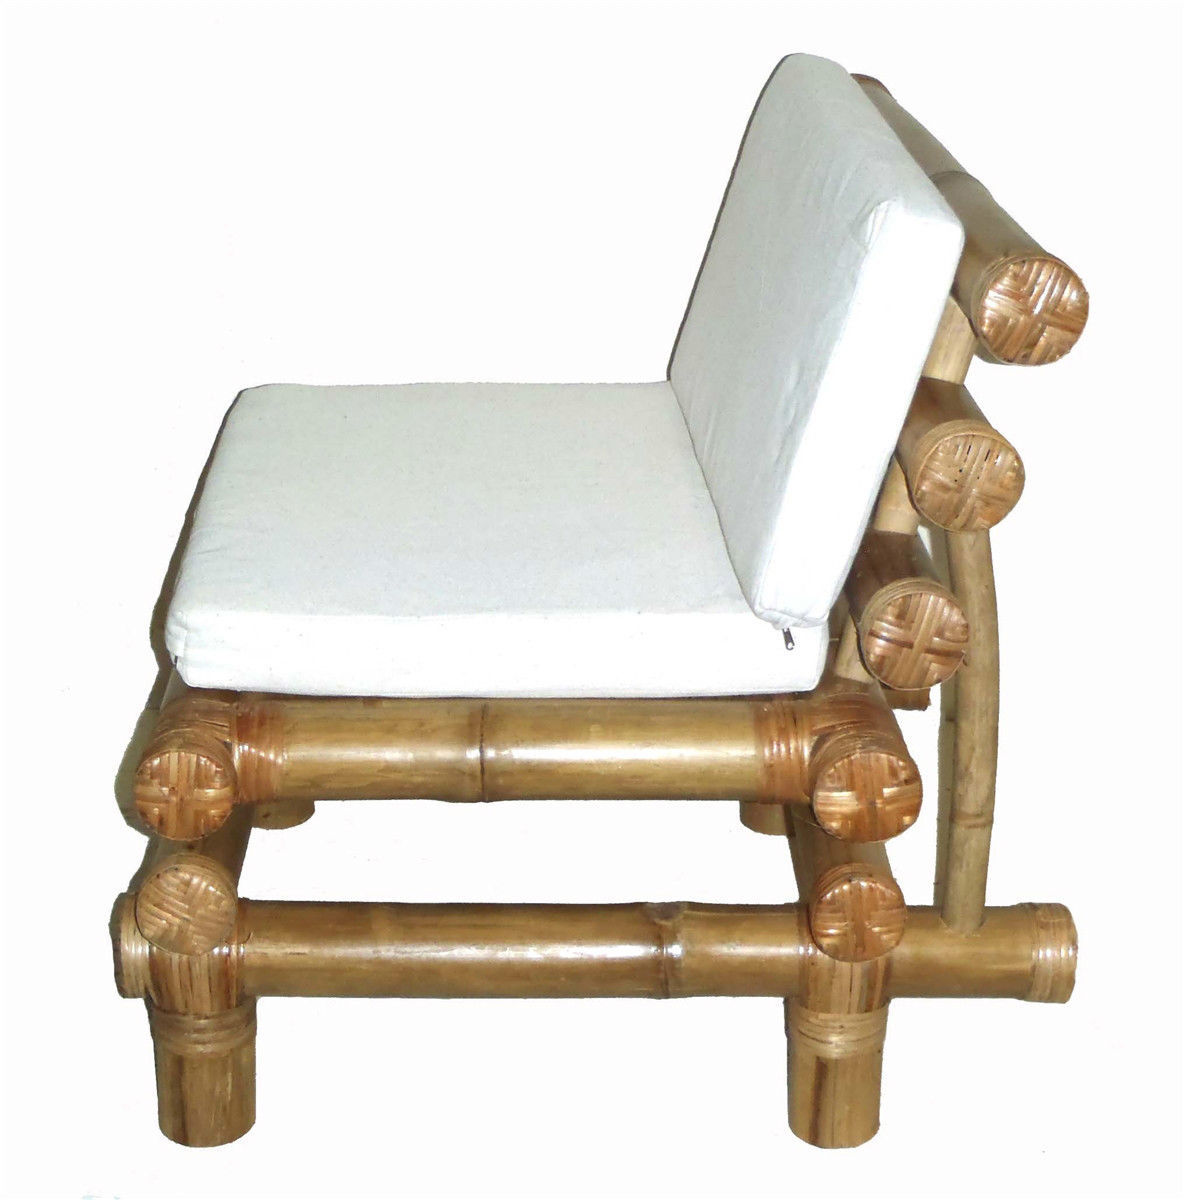 Bamboo Tiki Payang Patio Deck Chair with Cushion Factory Direct